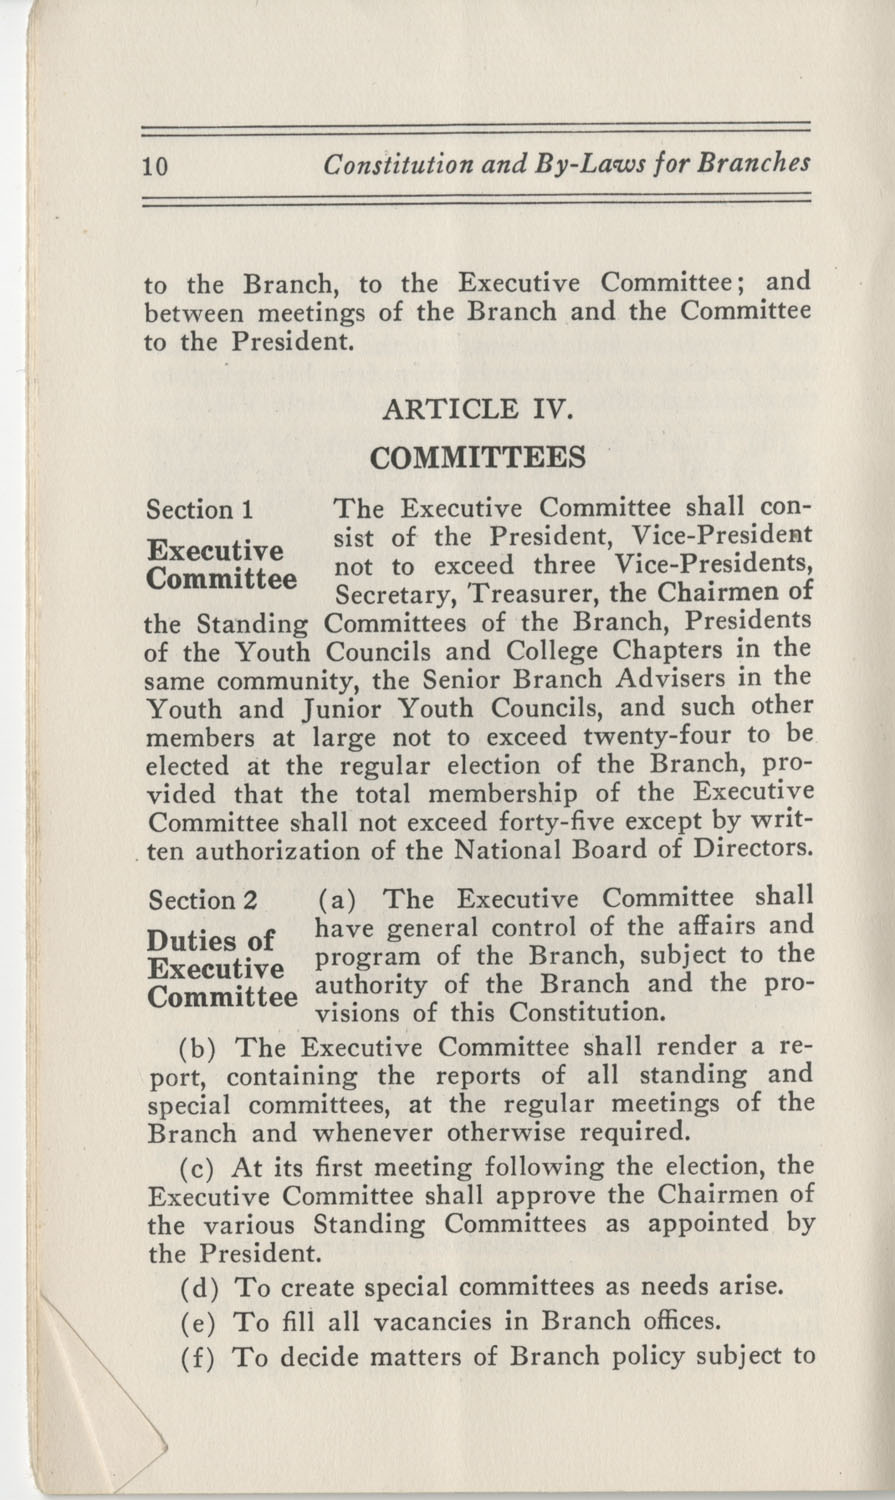 Constitutions and By-Laws, September 1960, Page 10